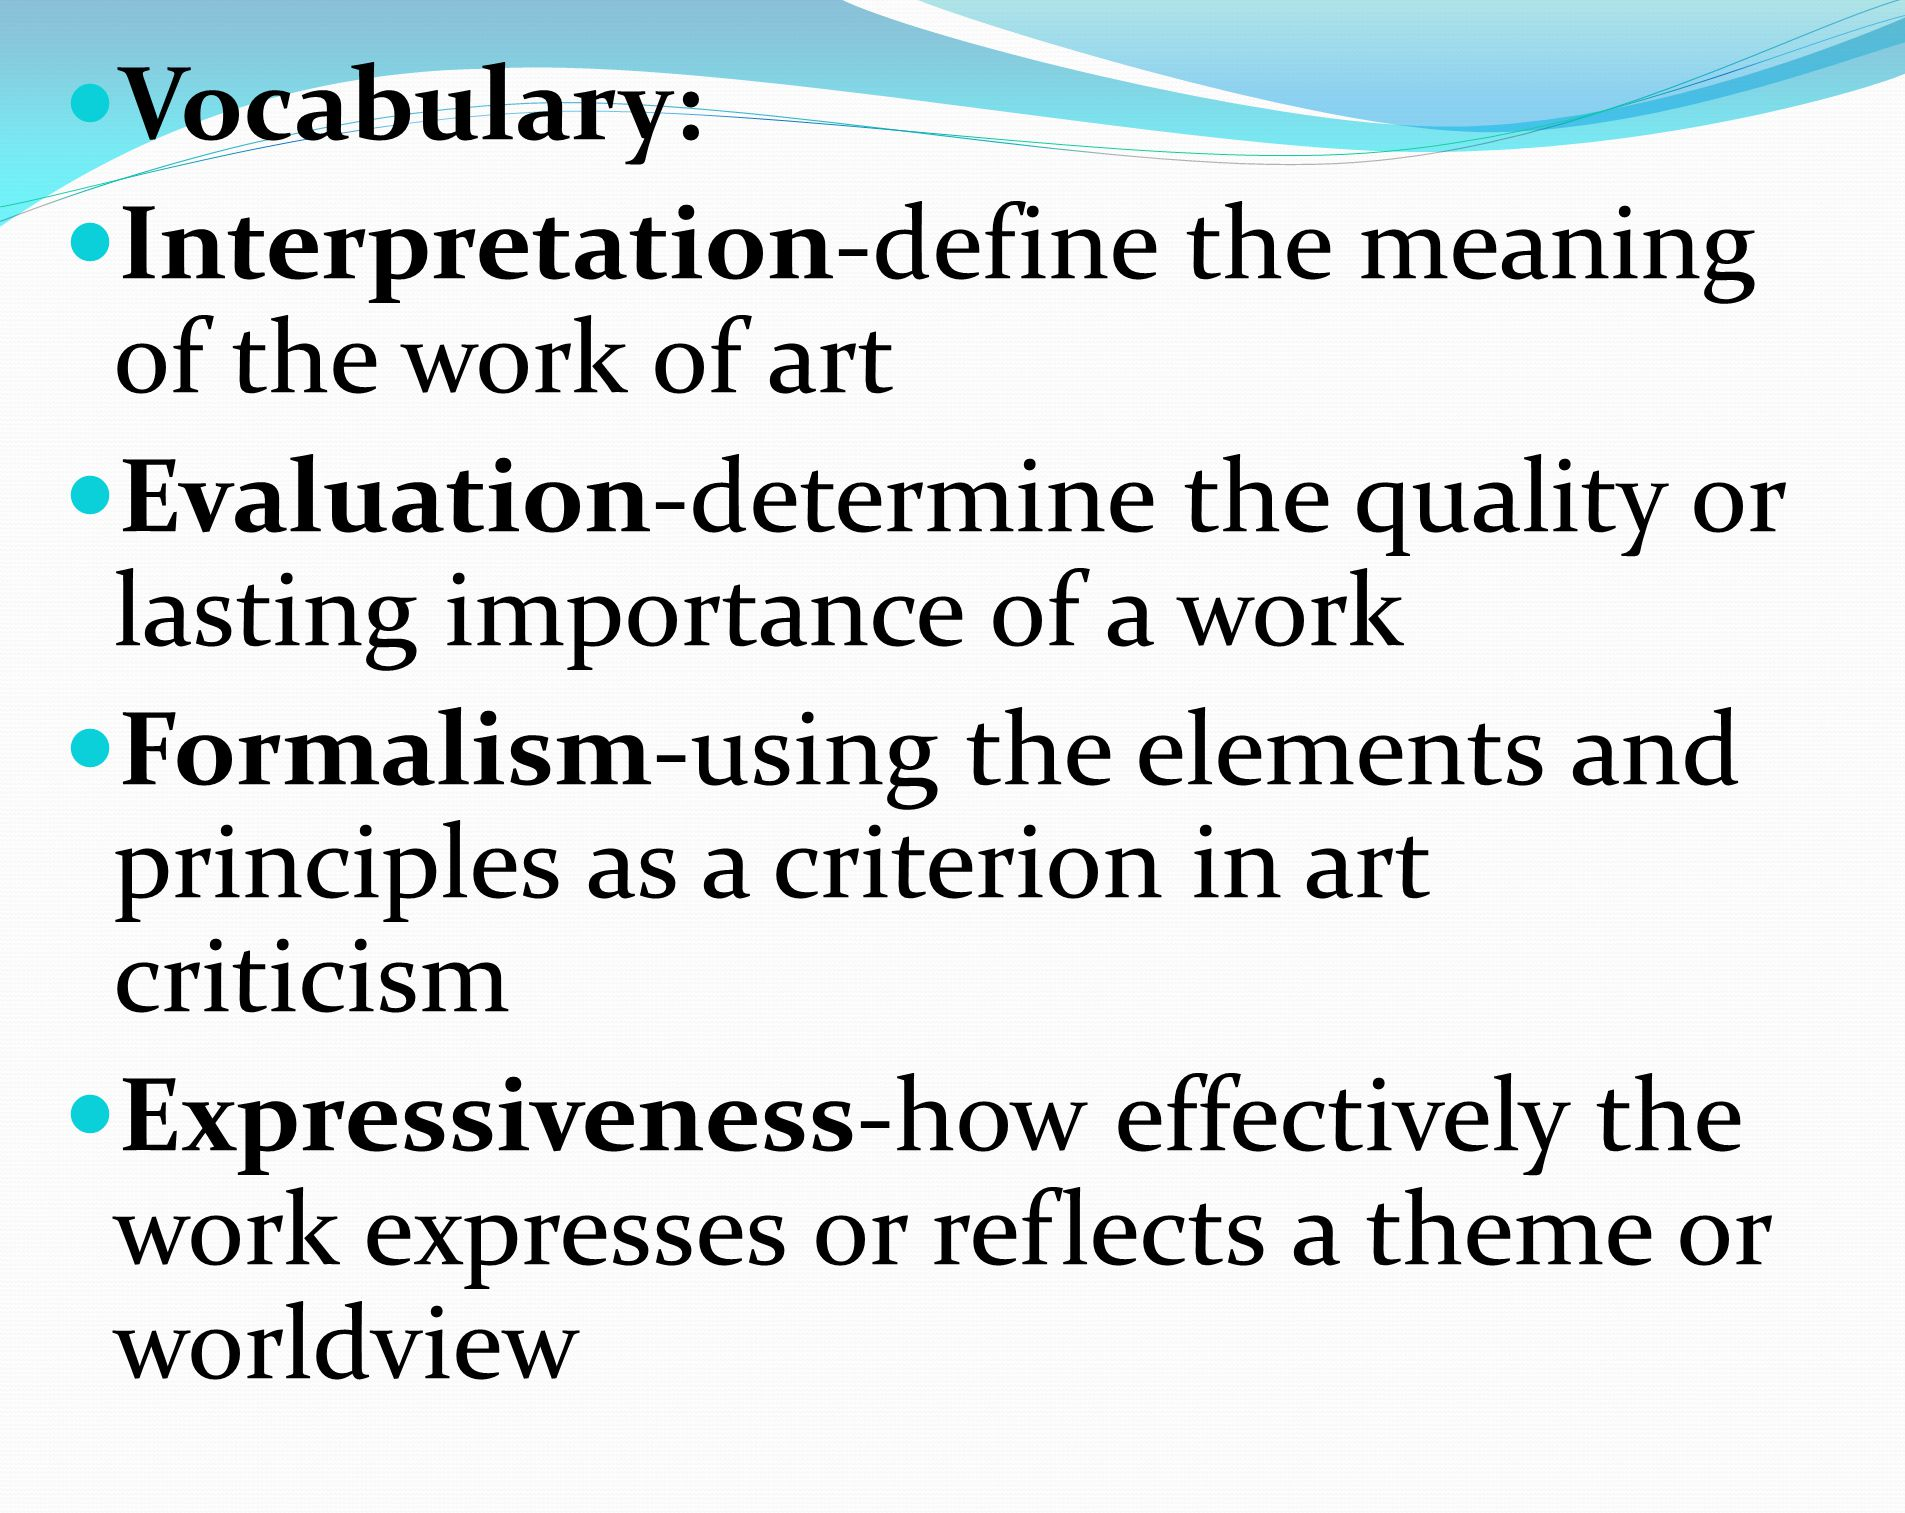 Vocabulary: Interpretation-define the meaning of the work of art. Evaluation-determine the quality or lasting importance of a work.